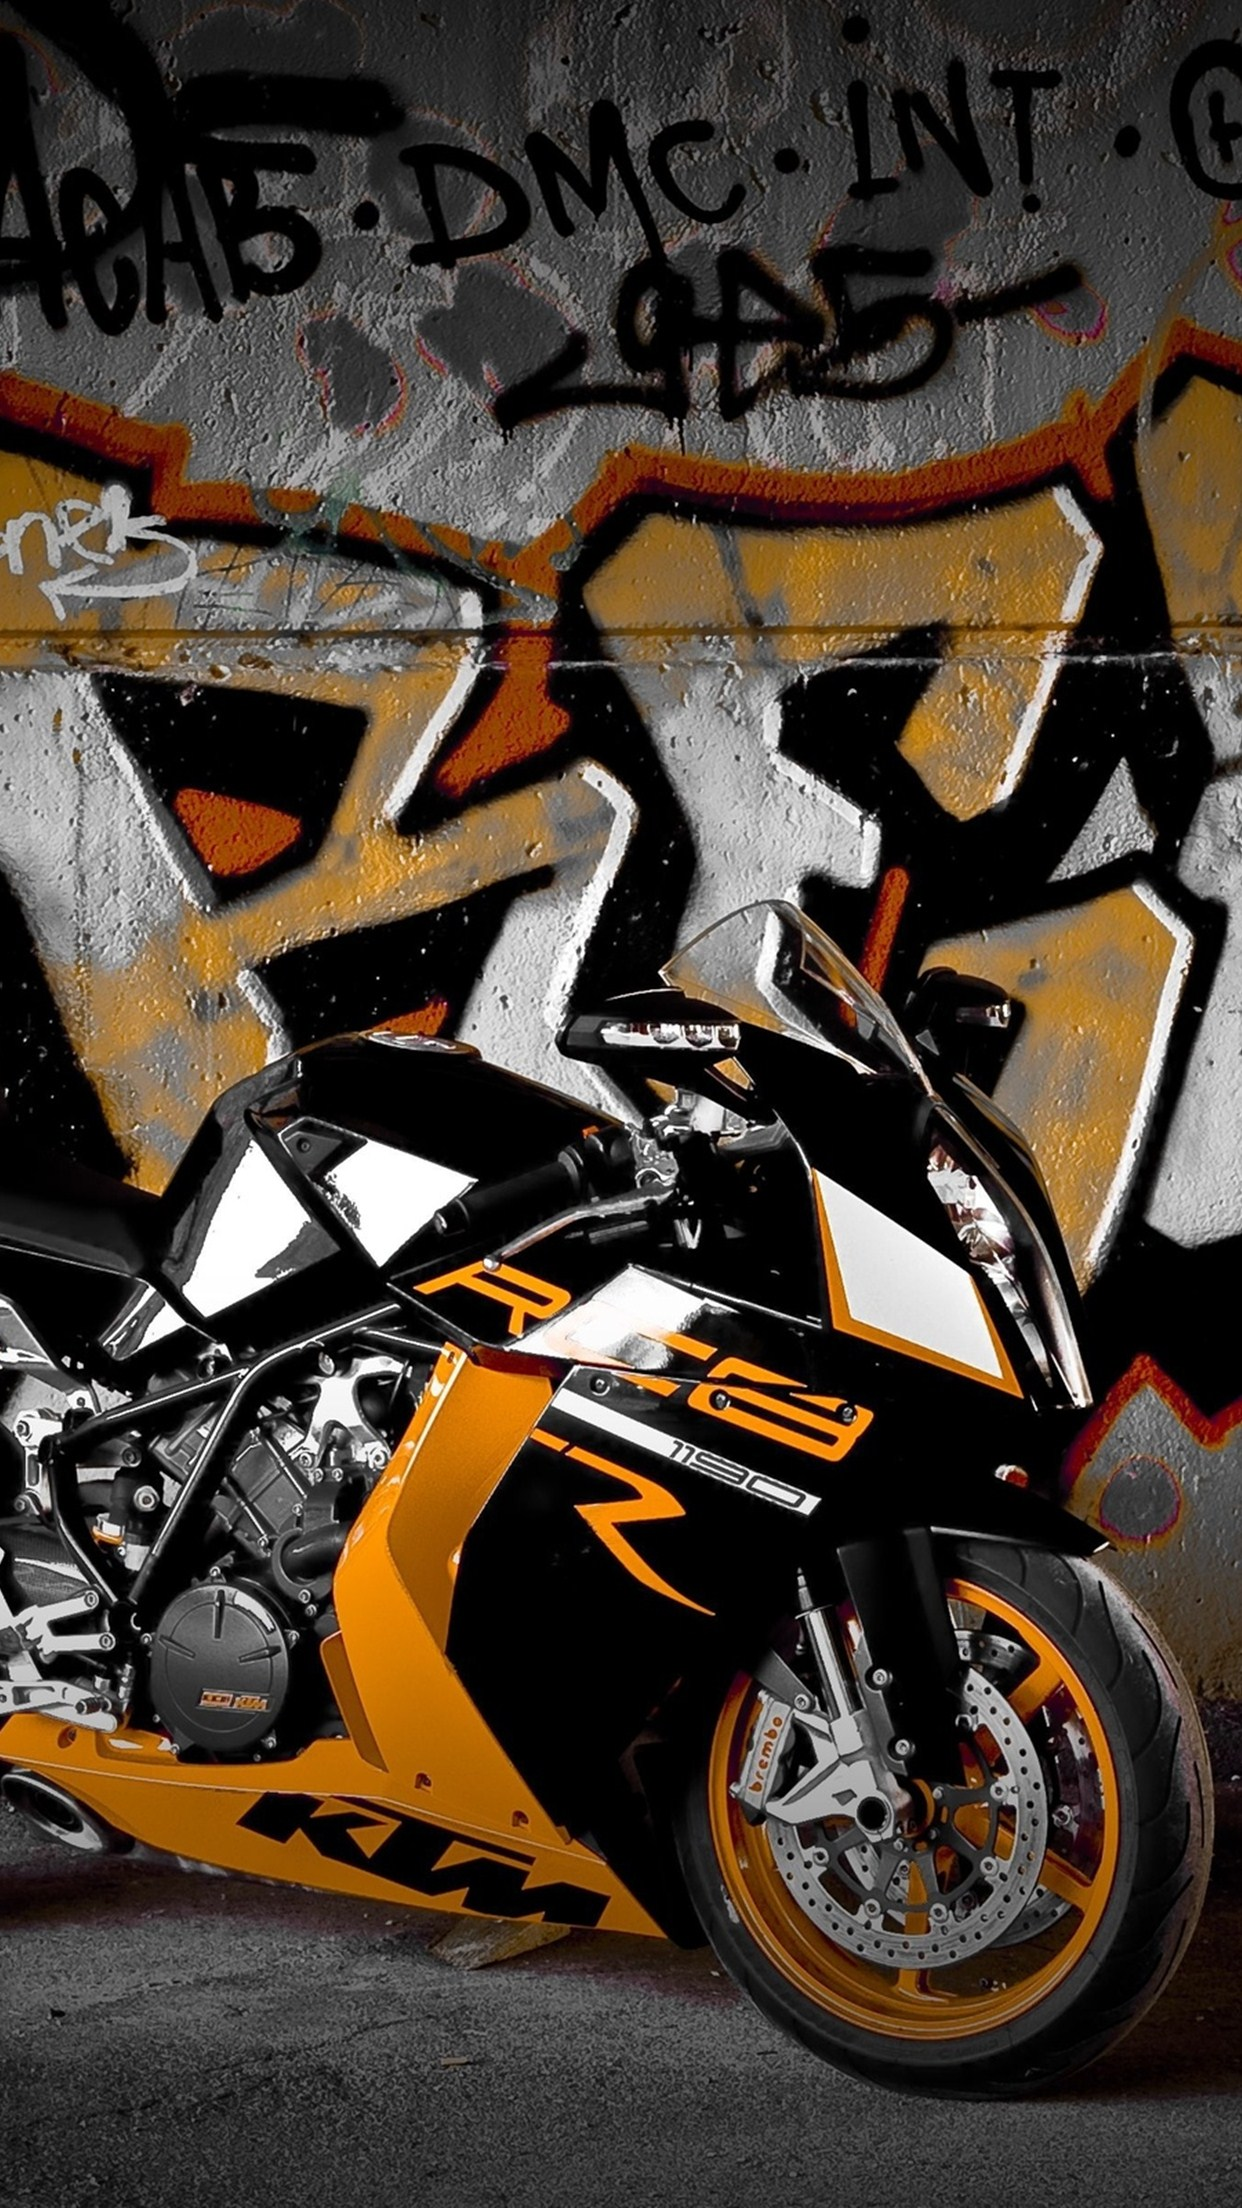 Iphone wallpaper ktm - 3wallpapers Notre S 233 Lection De Fonds D 233 Cran Du 18 11 15